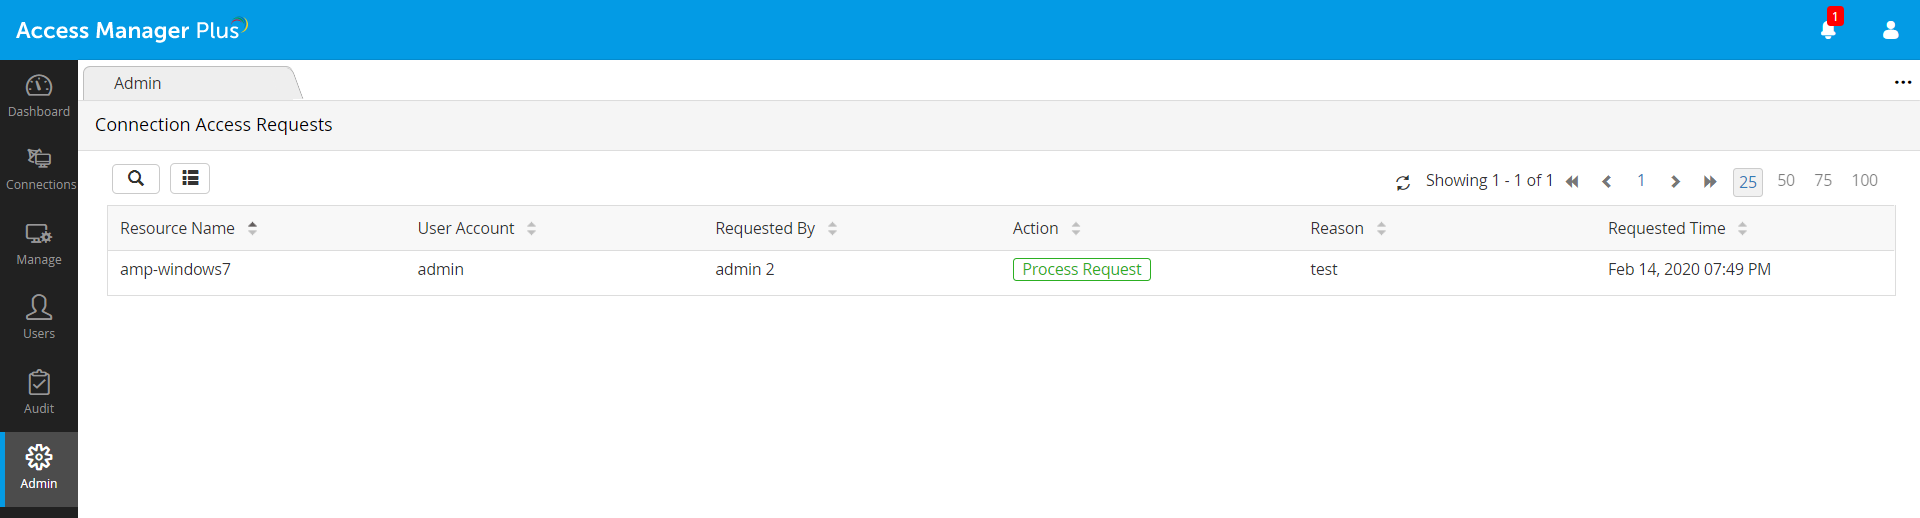 request approve release workflow in Access Manager Plus